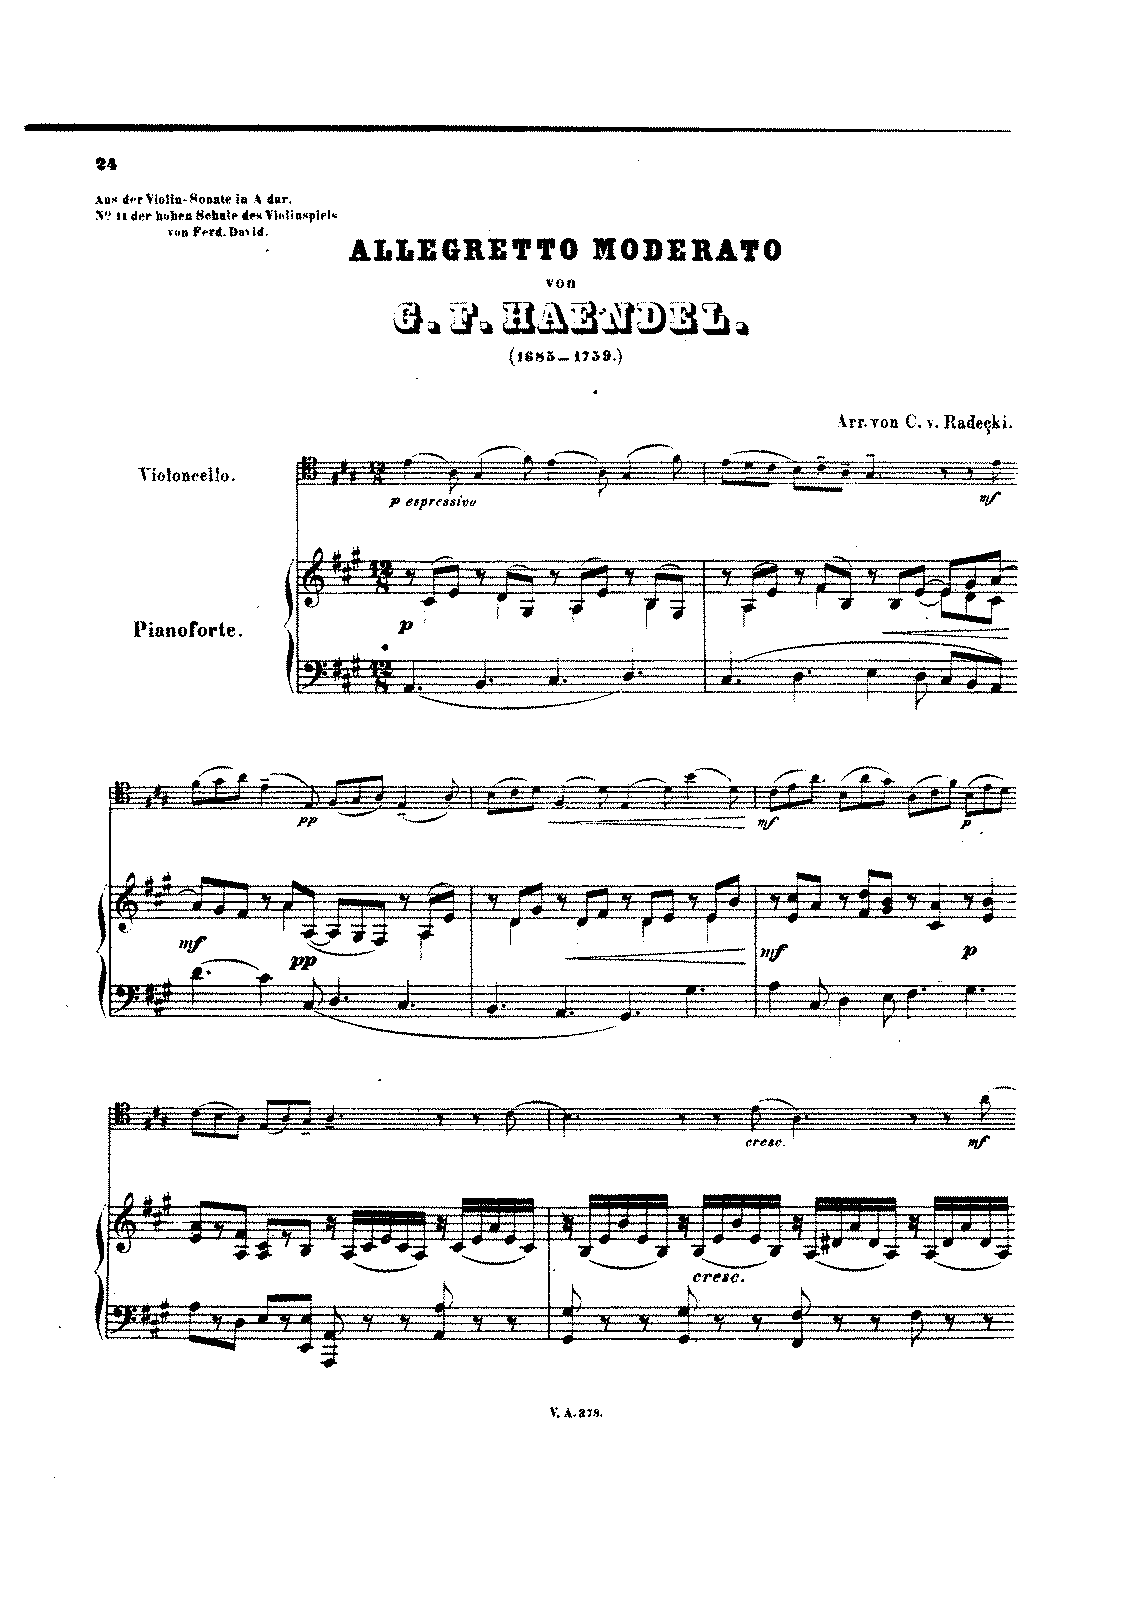 PMLP13605-Handel - Allegretto Moderato from Violin Sonata in A (Radecki) for Cello and Piano score.pdf